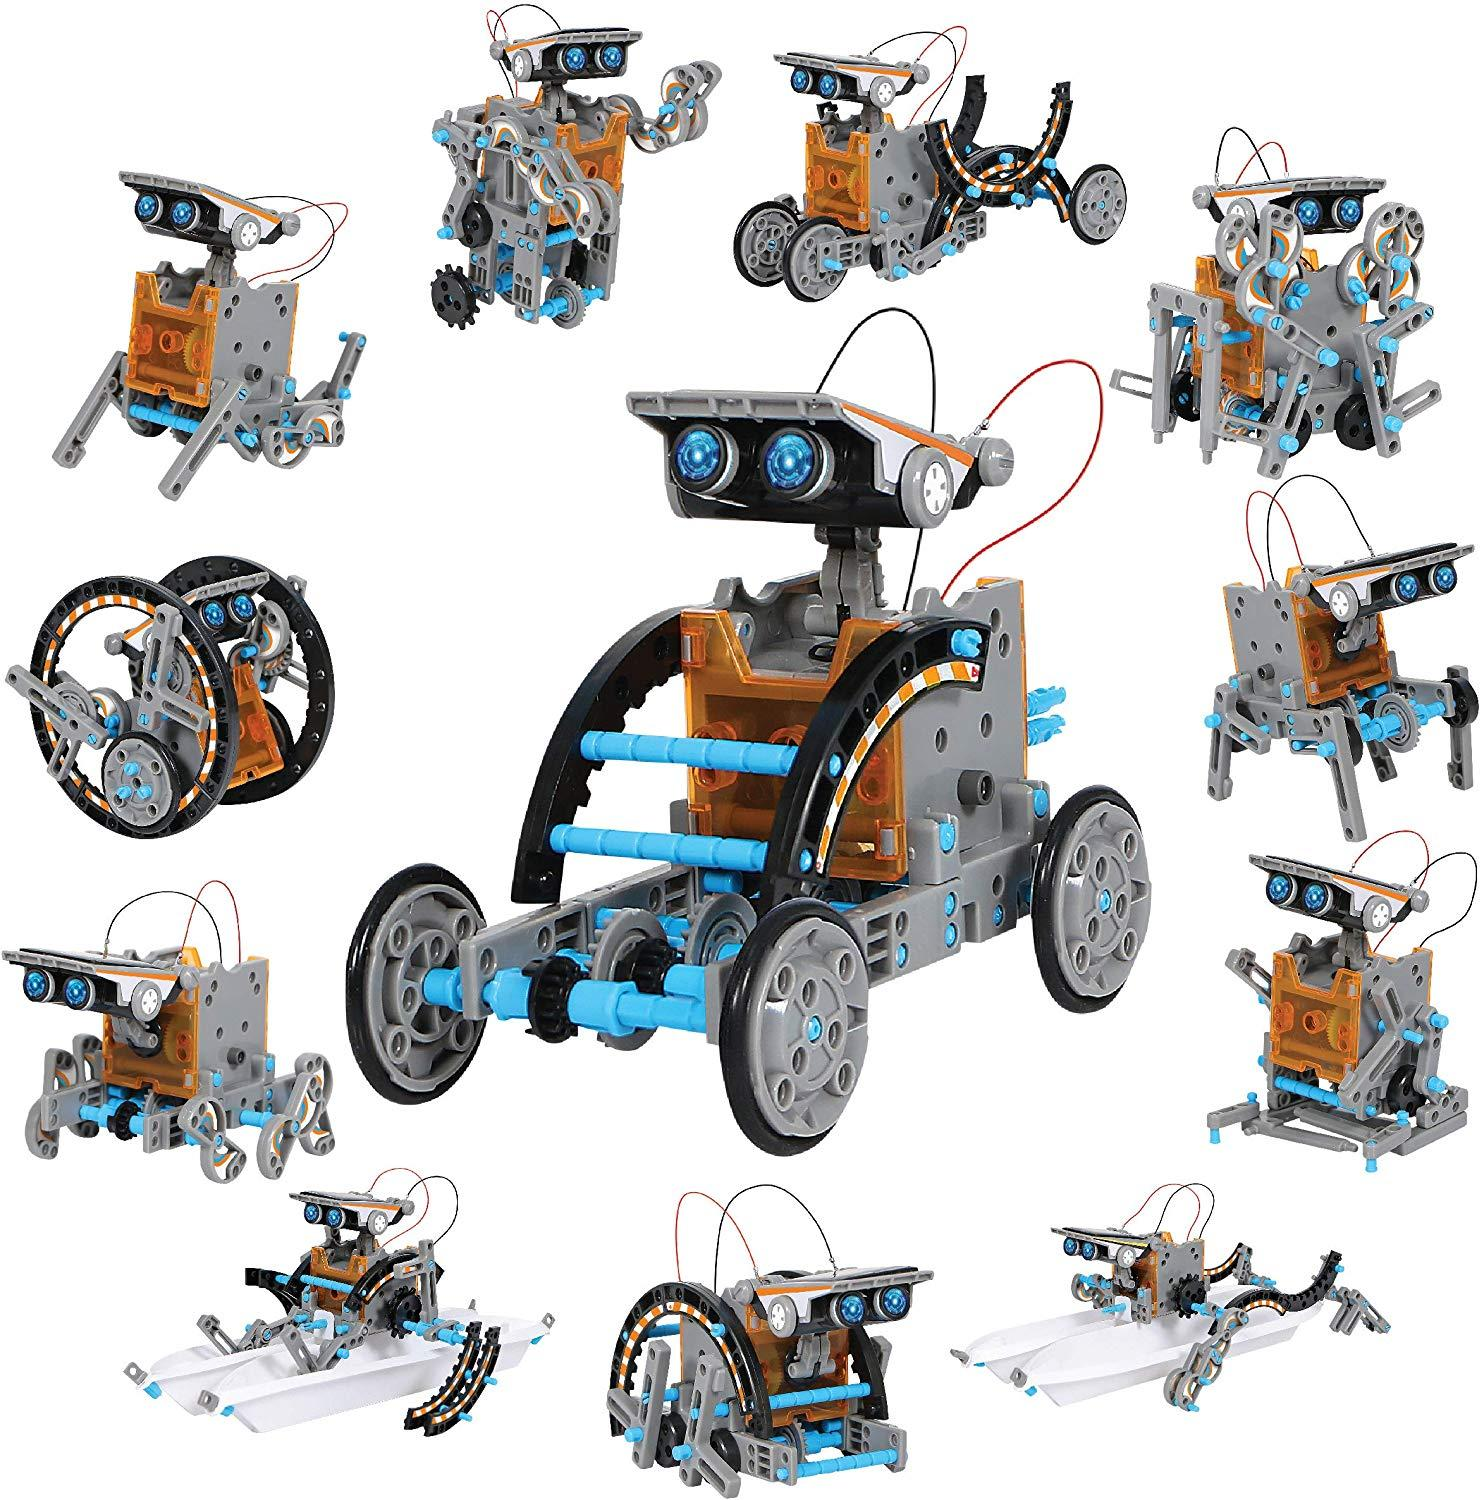 12-in-1 solar robotic making kit with Working Motorized Engine and Gears